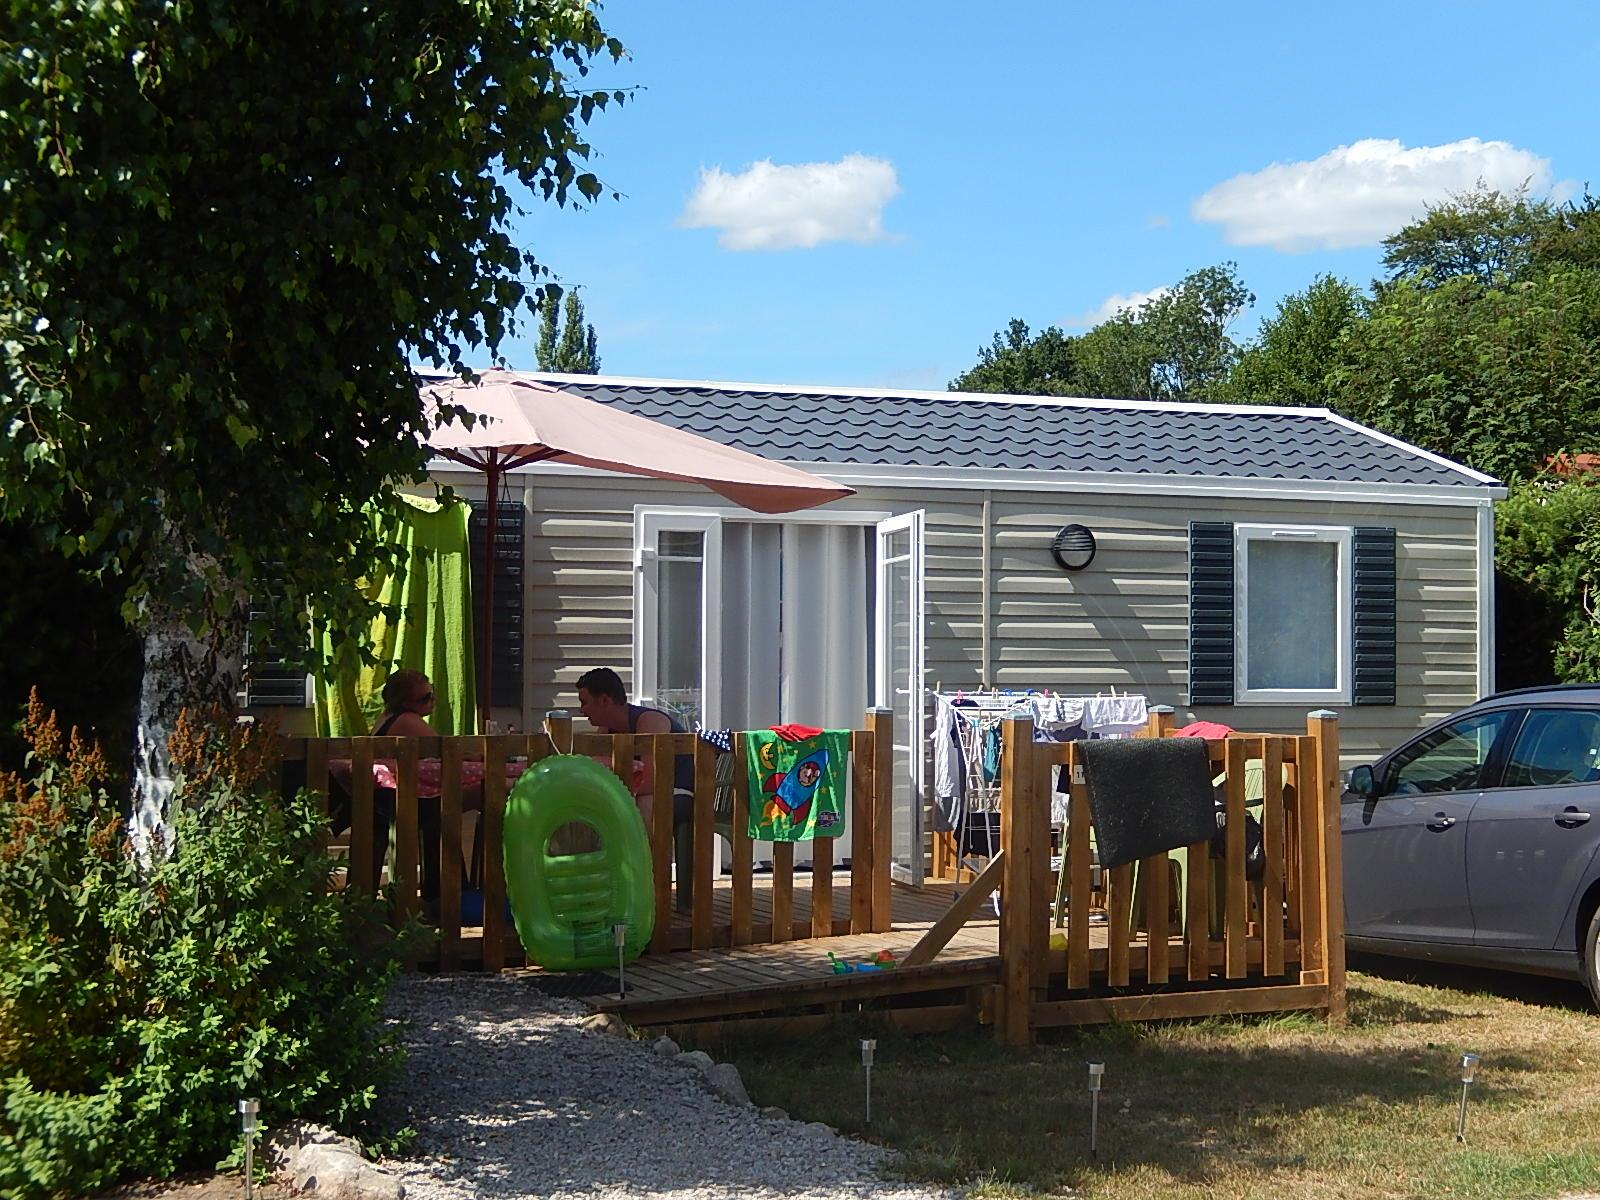 Wheelchair friendly Camping Sites et Paysages AU CLOS DE LA CHAUME - CORCIEUX